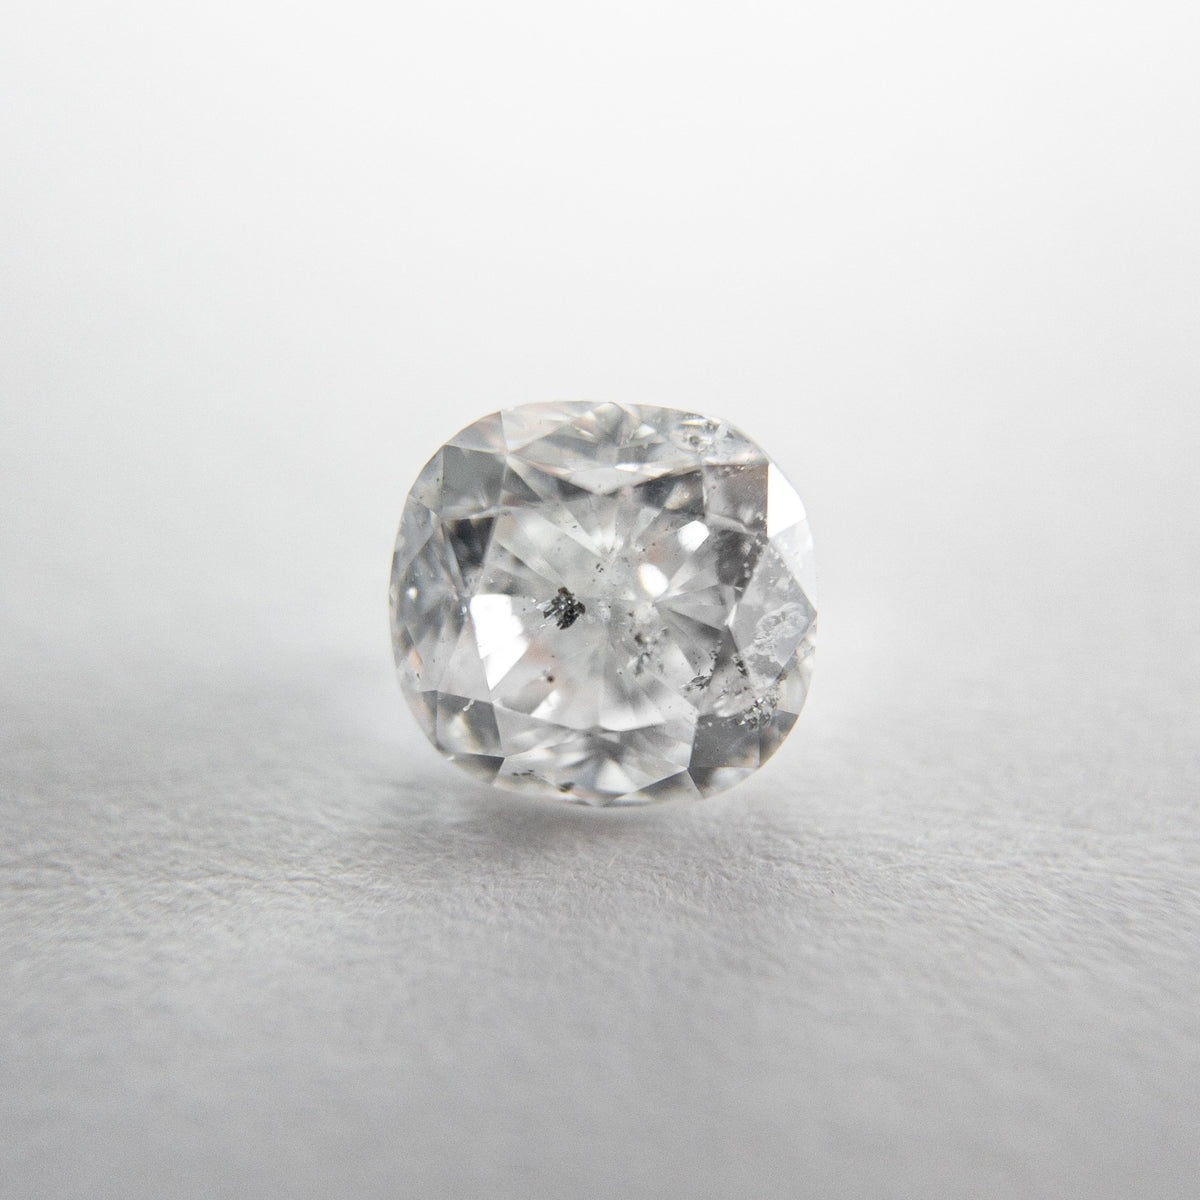 1.07ct 6.46x5.65x3.30mm Cushion Cut 18245-02